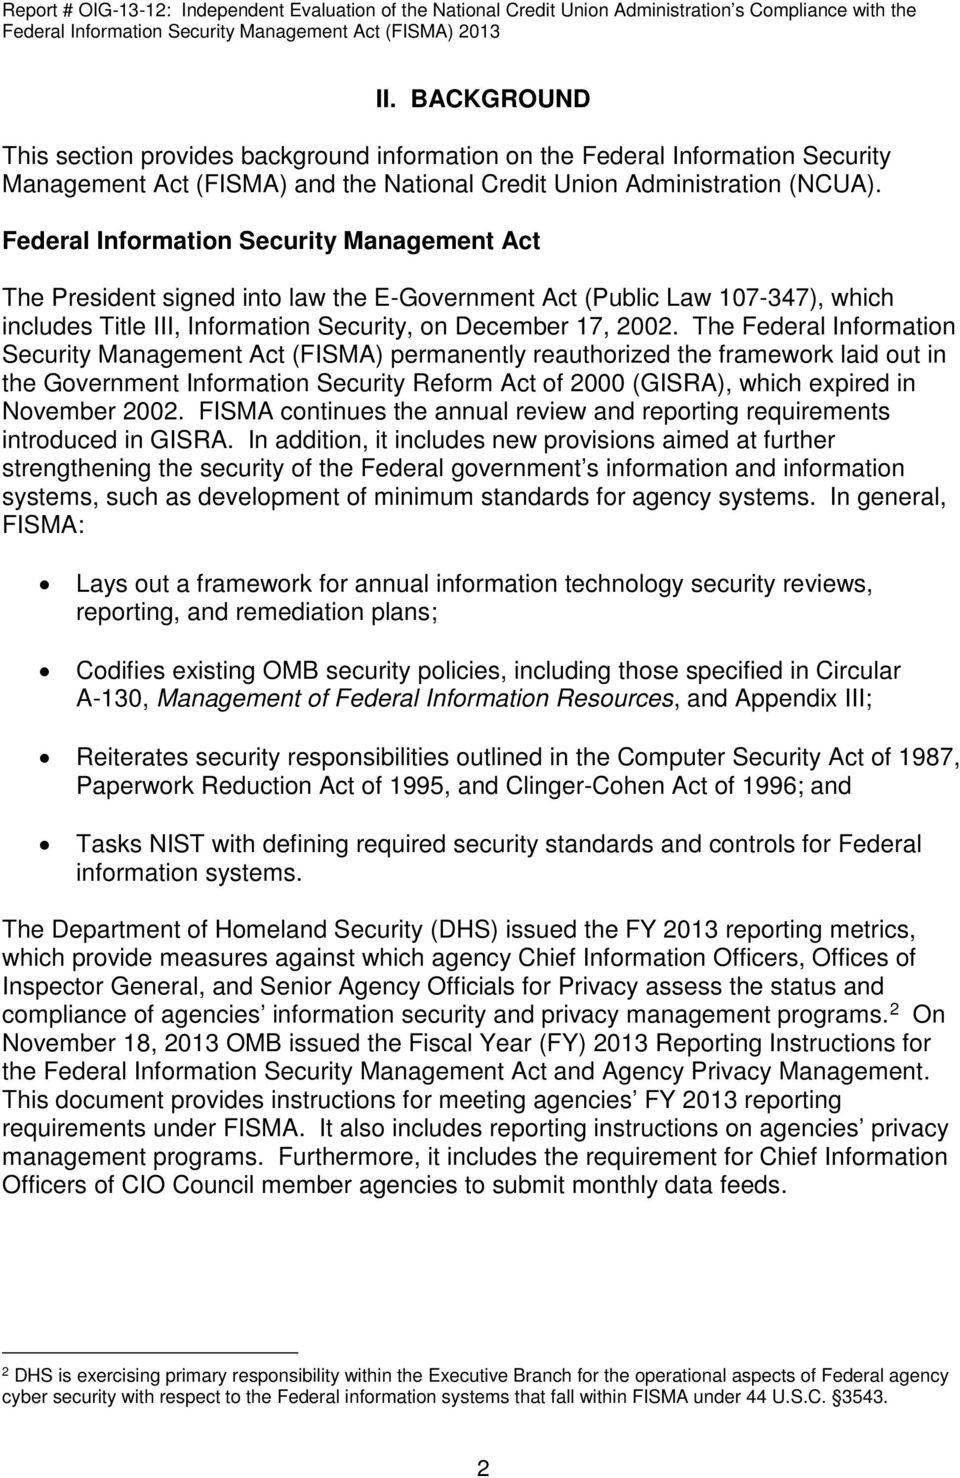 The Federal Information Security Management Act (FISMA) permanently reauthorized the framework laid out in the Government Information Security Reform Act of 2000 (GISRA), which expired in November